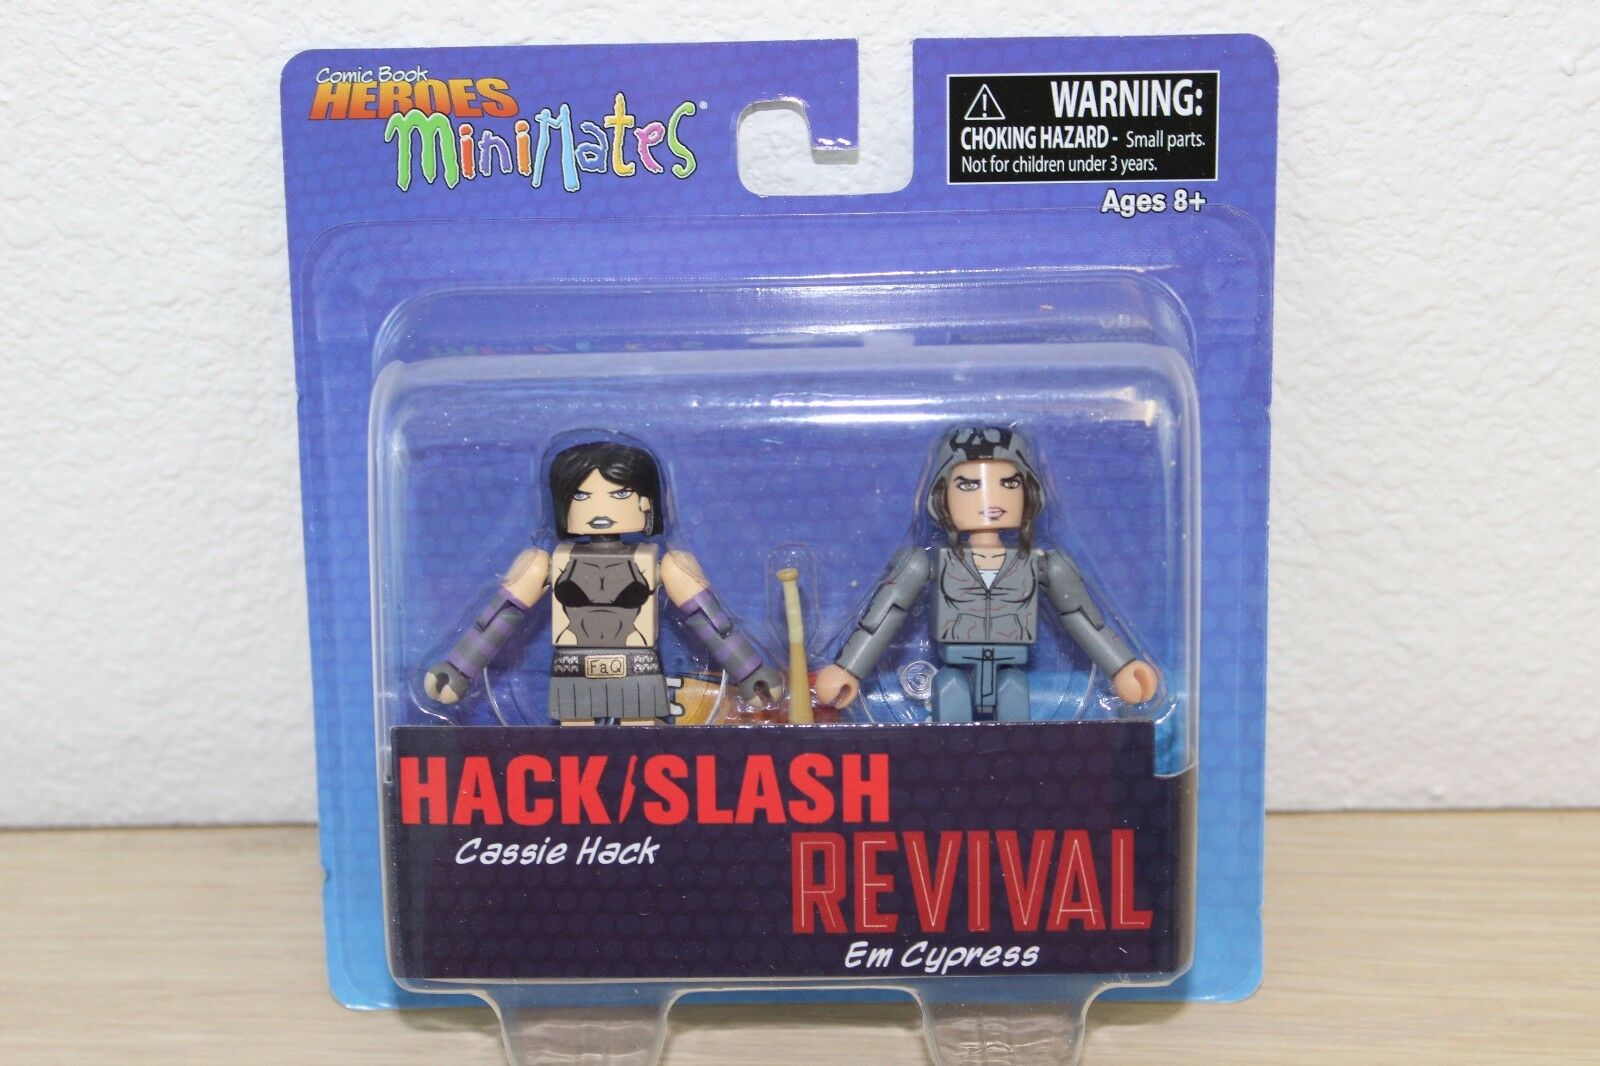 Comic Book Heroes Minimates Revival Hack//Slash Cassie Hack Cypress Action Figure